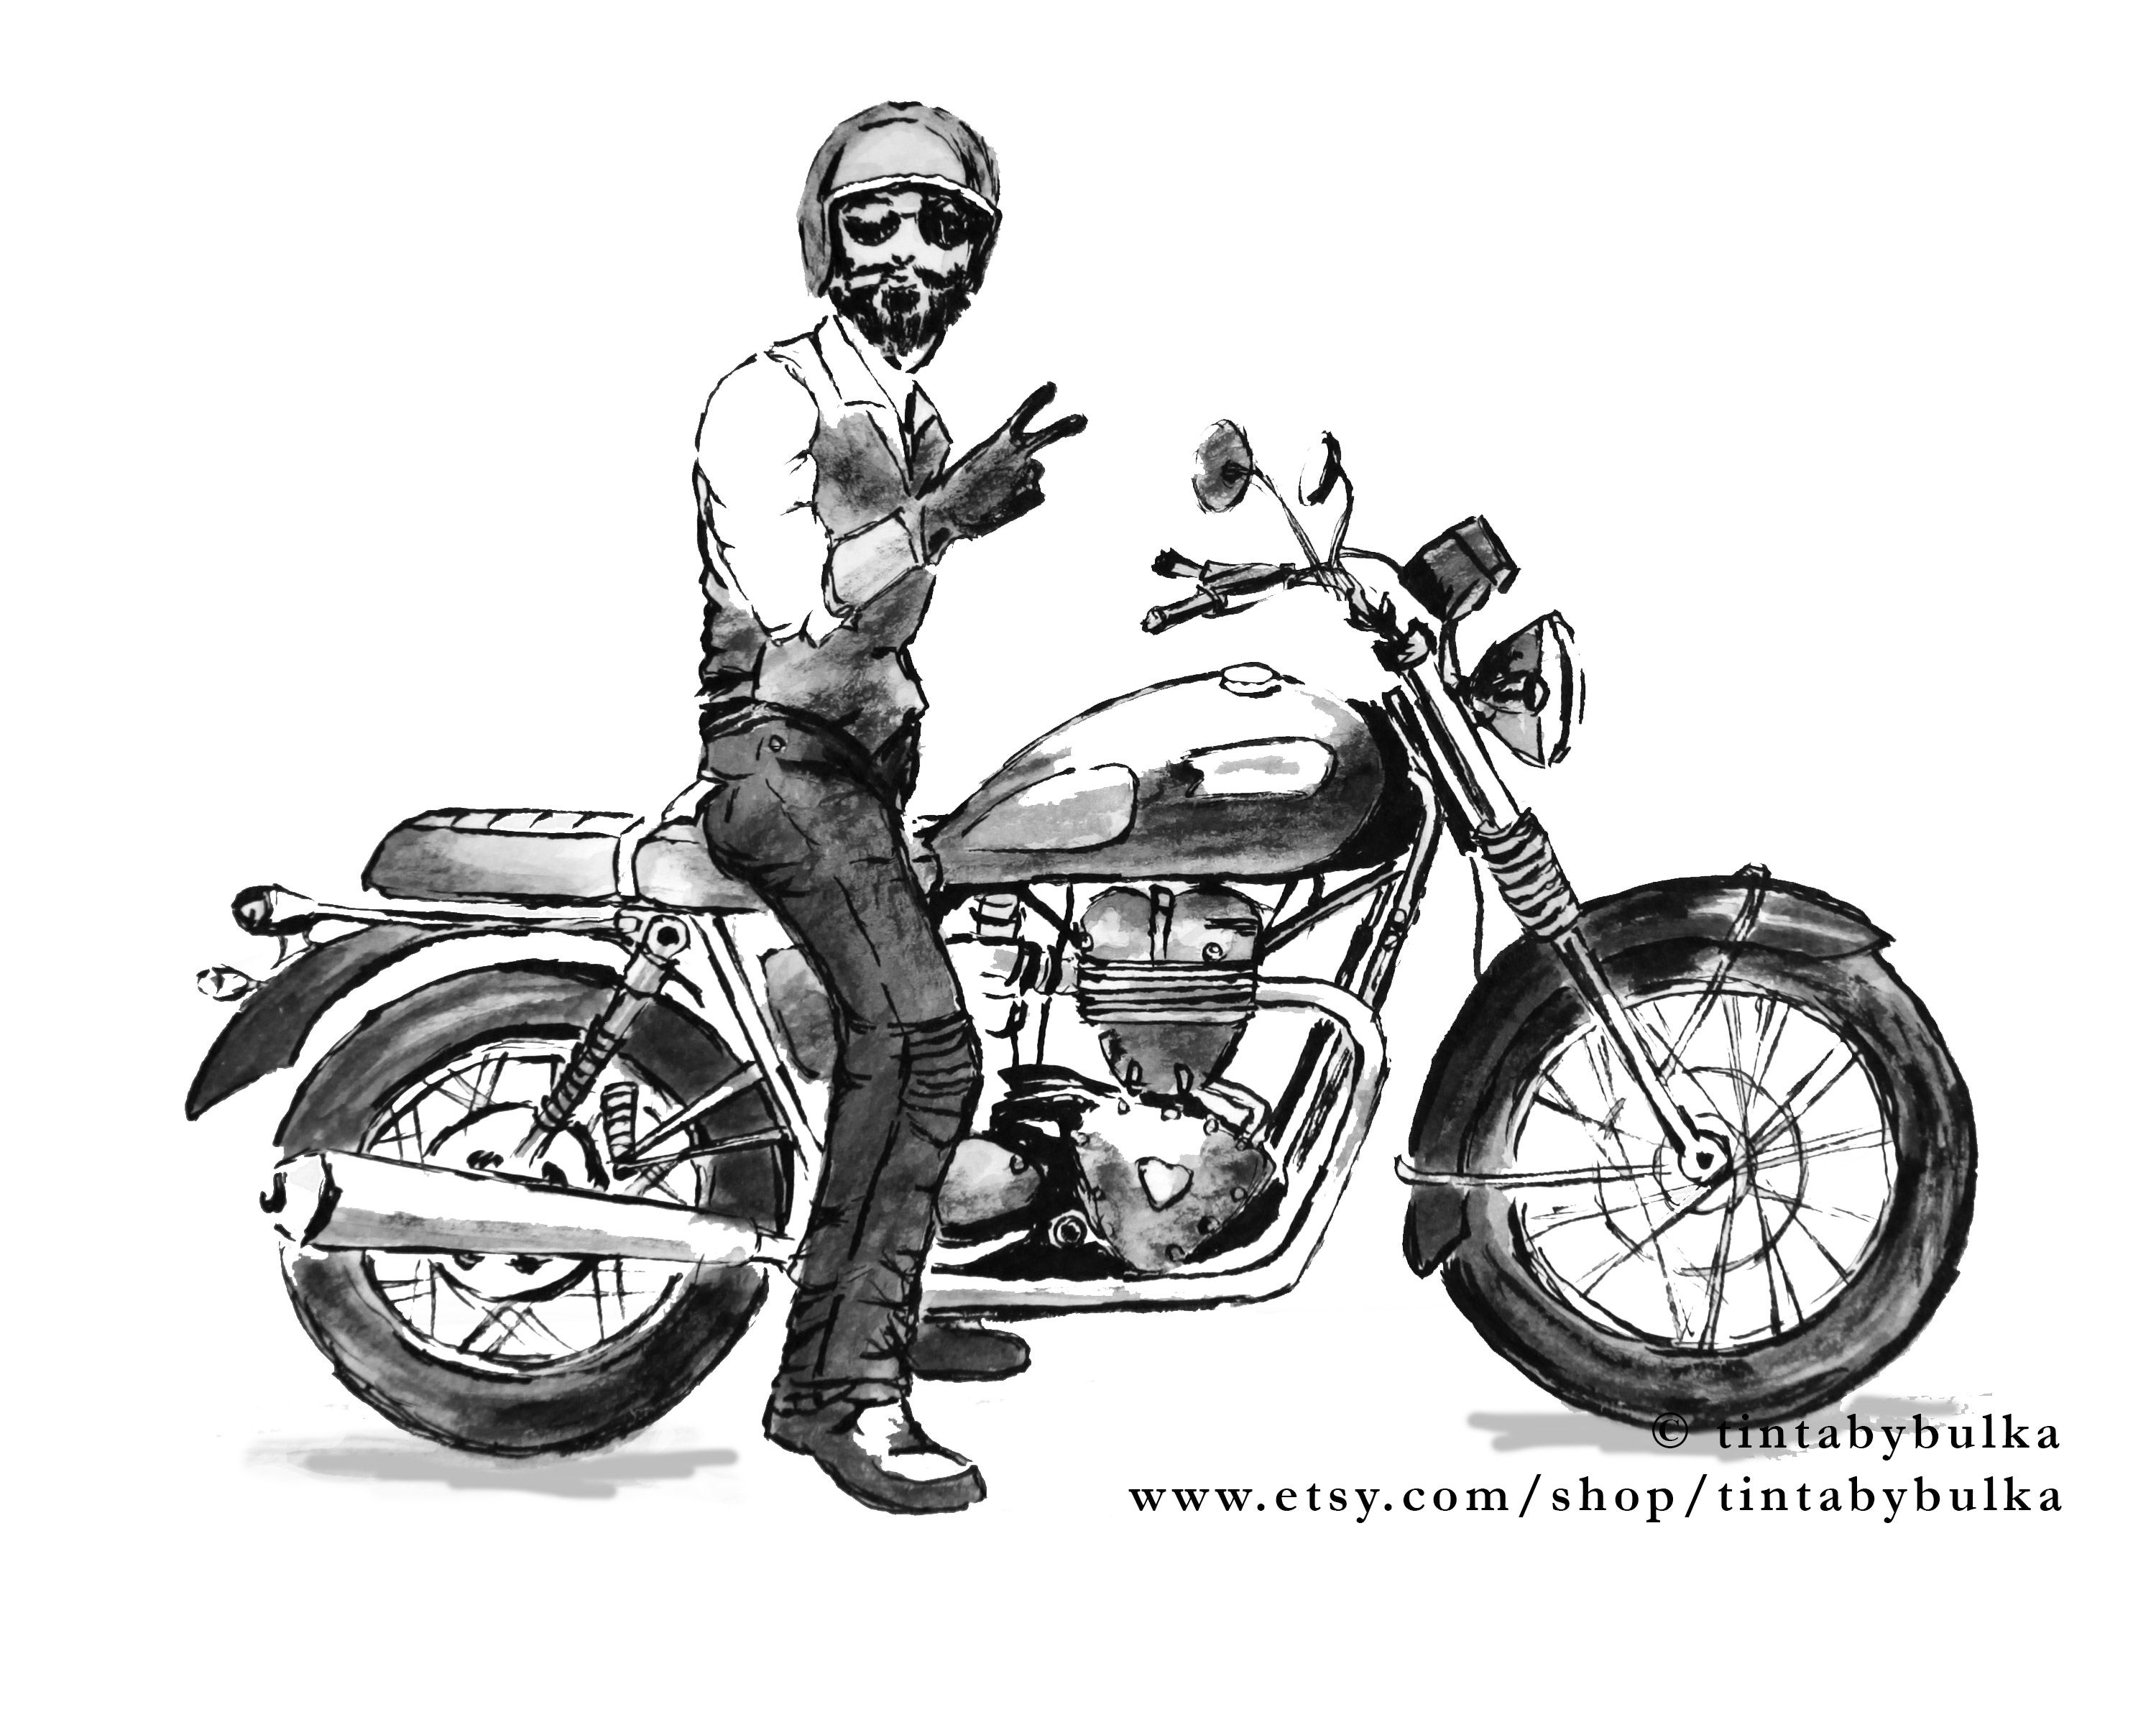 Motorcycle Gifts Motorcycle Art Motorcyclist Gift